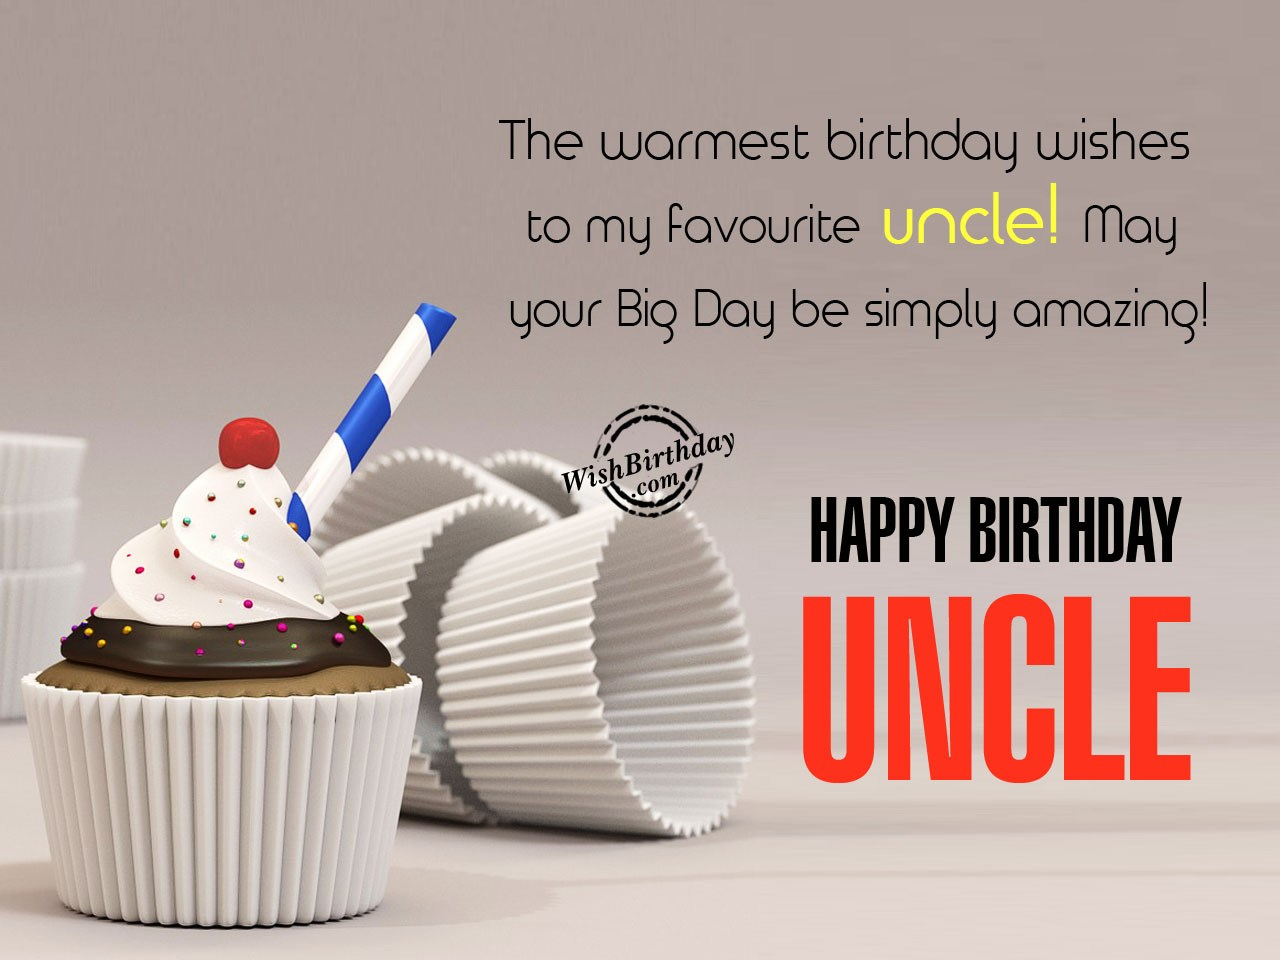 Birthday wishes for uncle birthday images pictures the warmest birthday wishes m4hsunfo